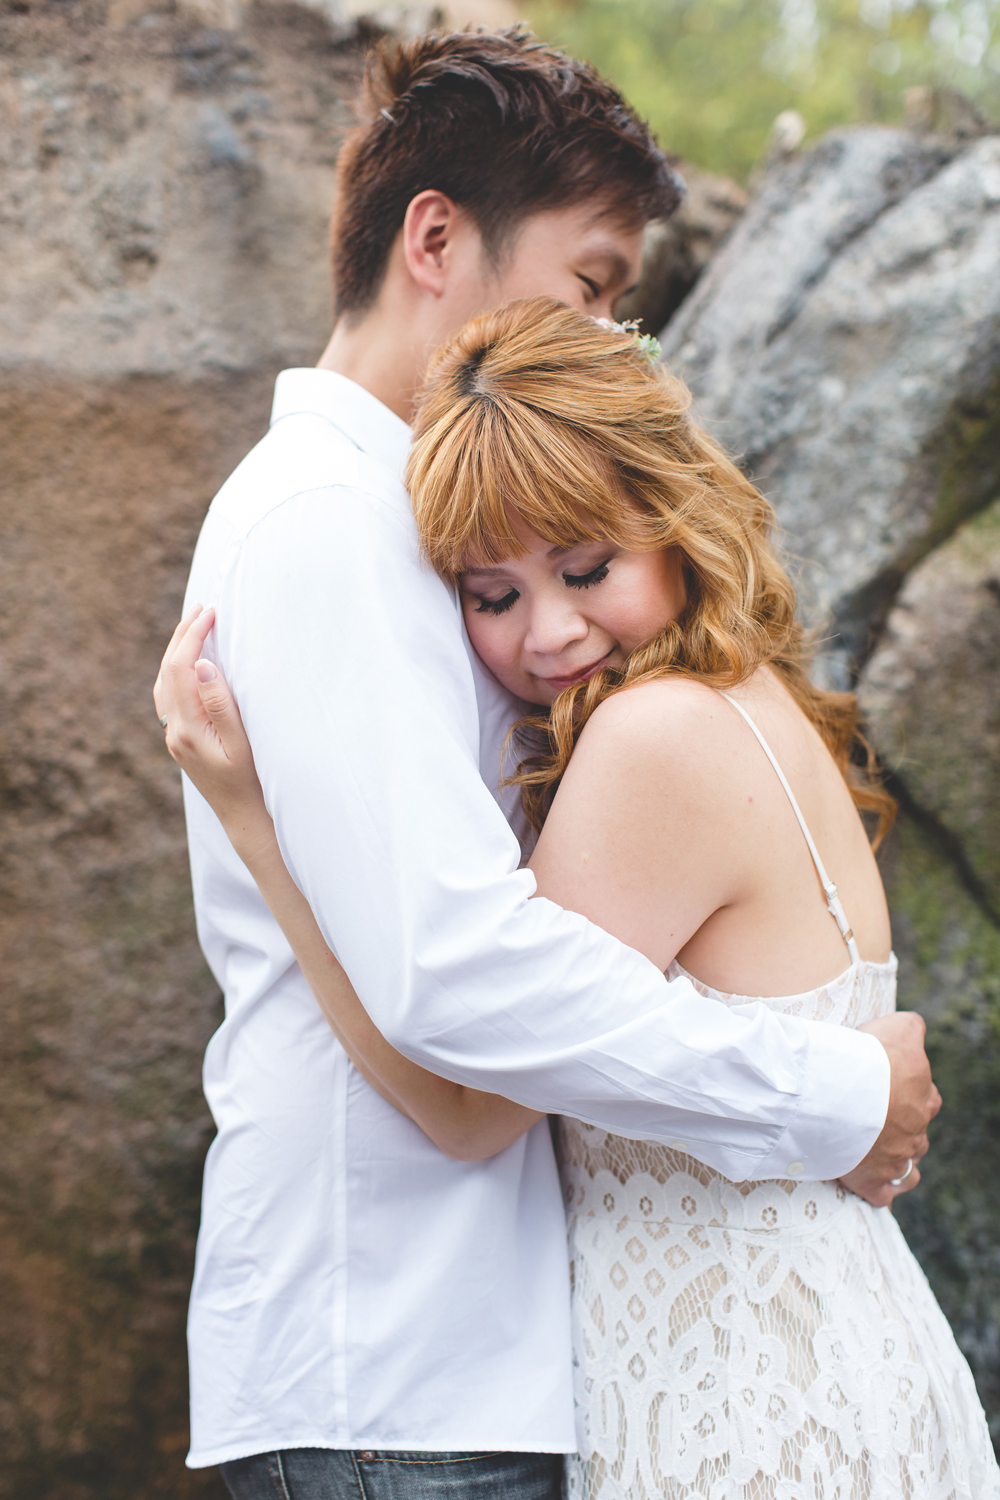 Disney Honeymoon session - Disney Engagement Photos - Disney Wedding Photographer - Destination Orlando Wedding Photographer - Jaime DiOrio (21).jpg